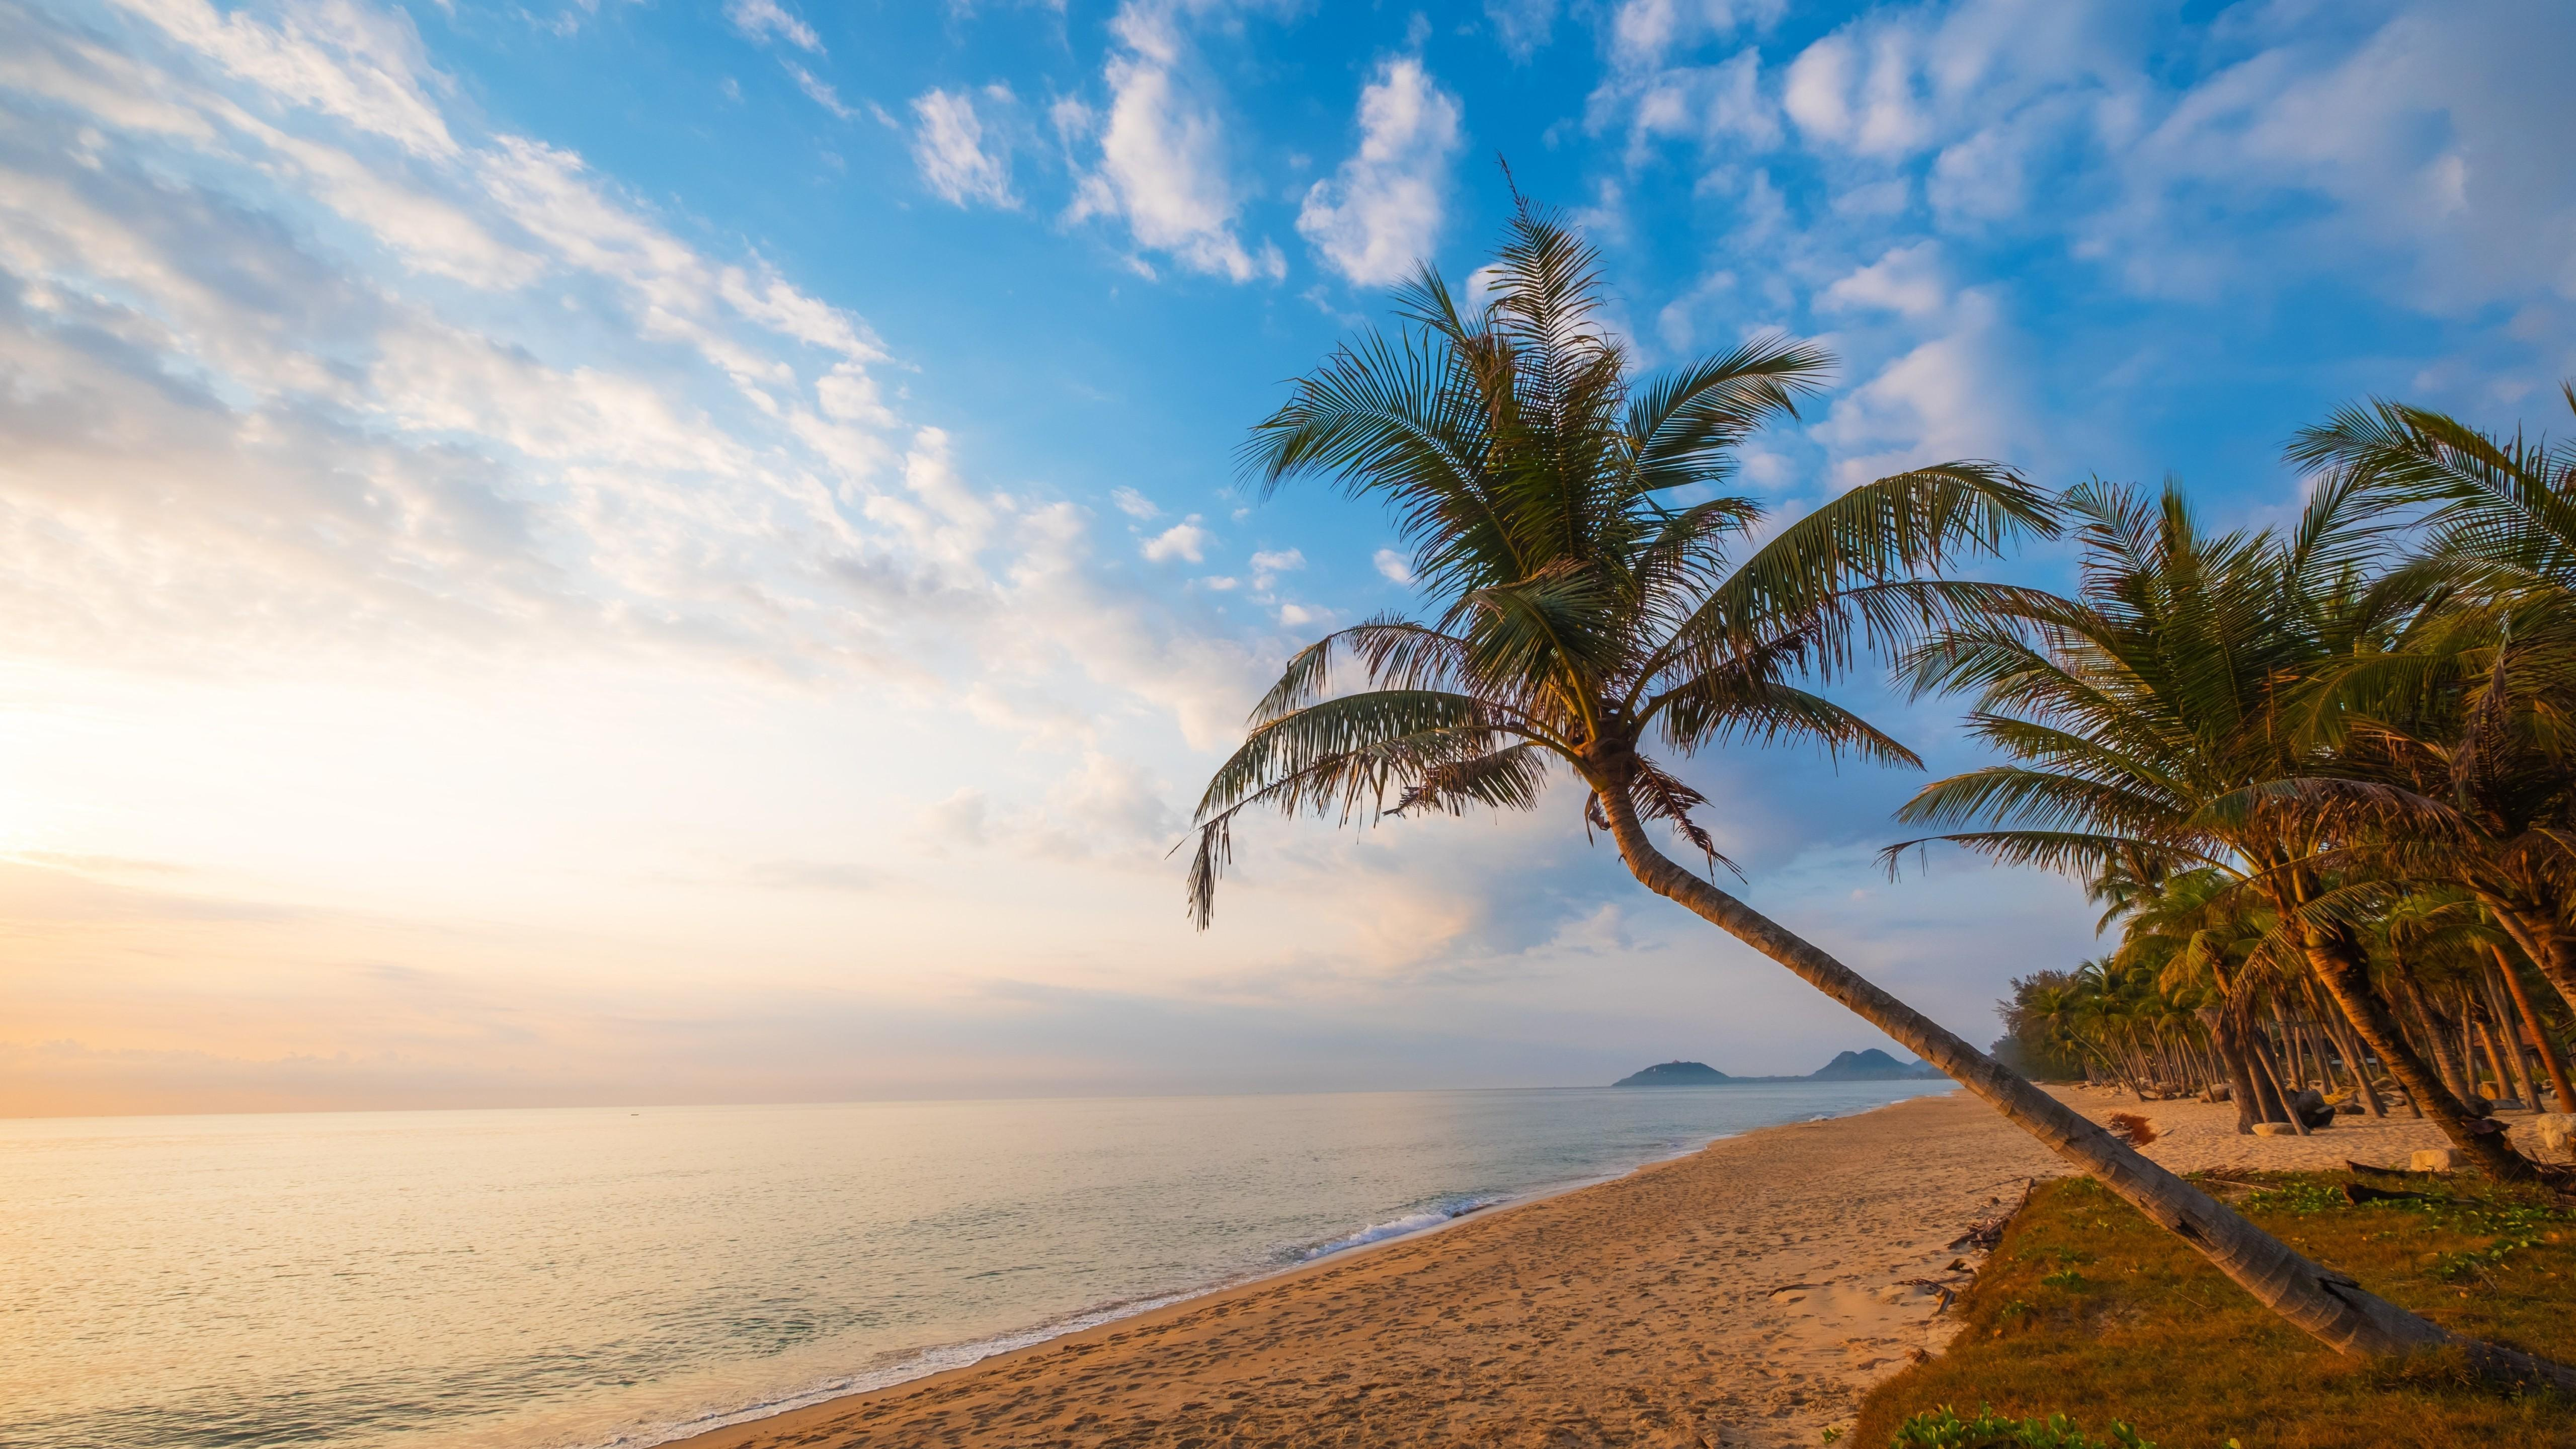 Download 5120x2880 Beach, Horizon, Ocean, Palm Tree Wallpapers